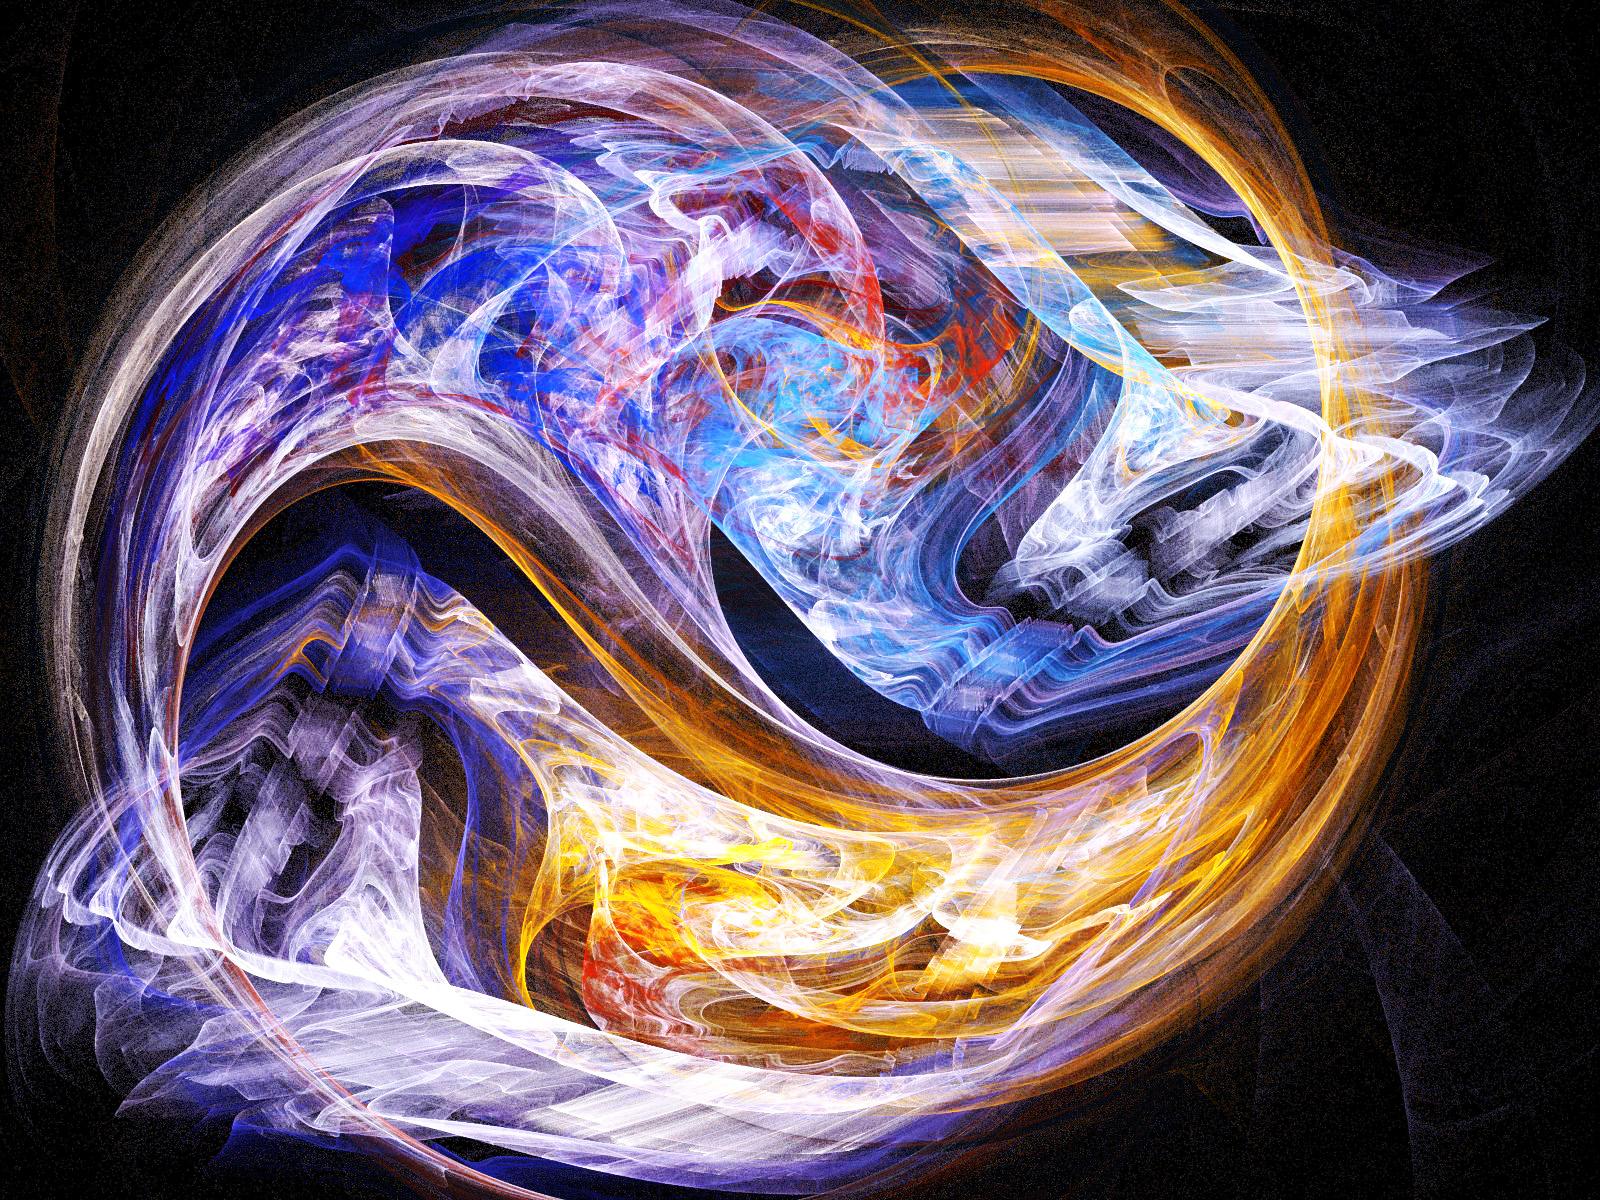 Fire and ice by canadian fast food on deviantart for Fire and ice tattoo shop